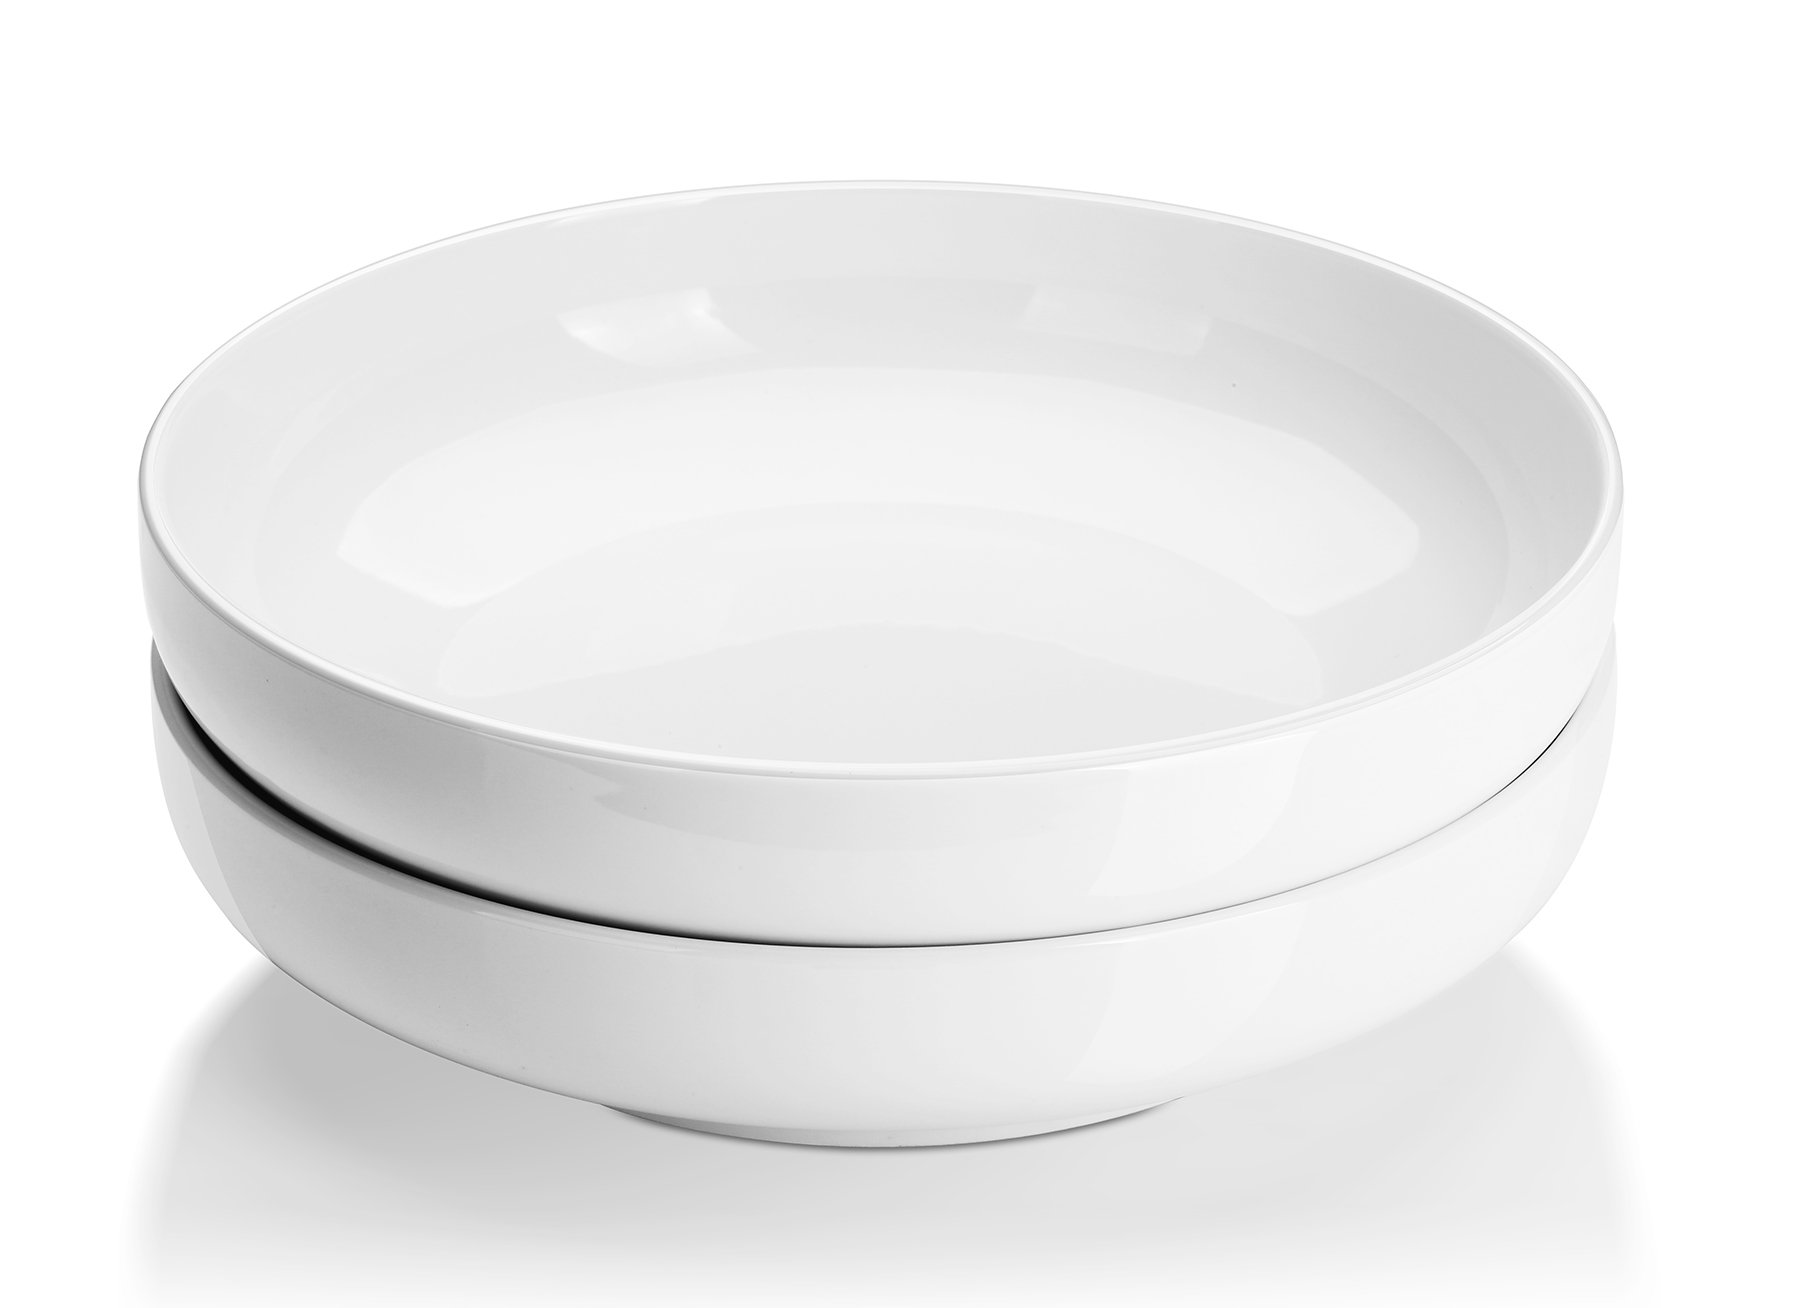 DOWAN 2 Quarts Porcelain Serving Bowls for Salad, Soup, Pasta, Fruit, Large Serving Dishes, Anti Slip and Stackable, 2 Packs, White by DOWAN